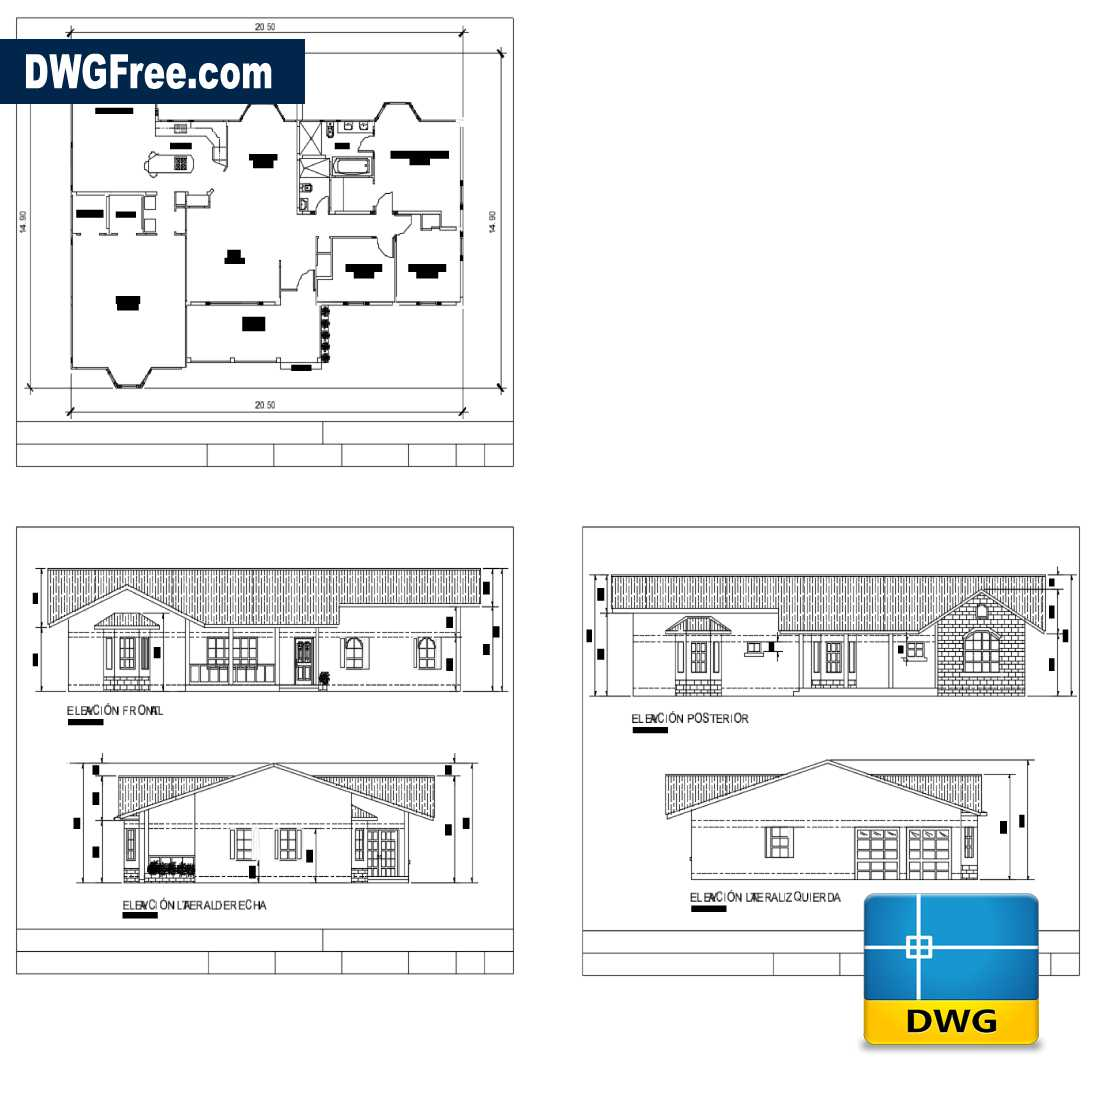 Simple House With 3 Bedrooms DWG 2D [Drawing 2020 ] DwgFree